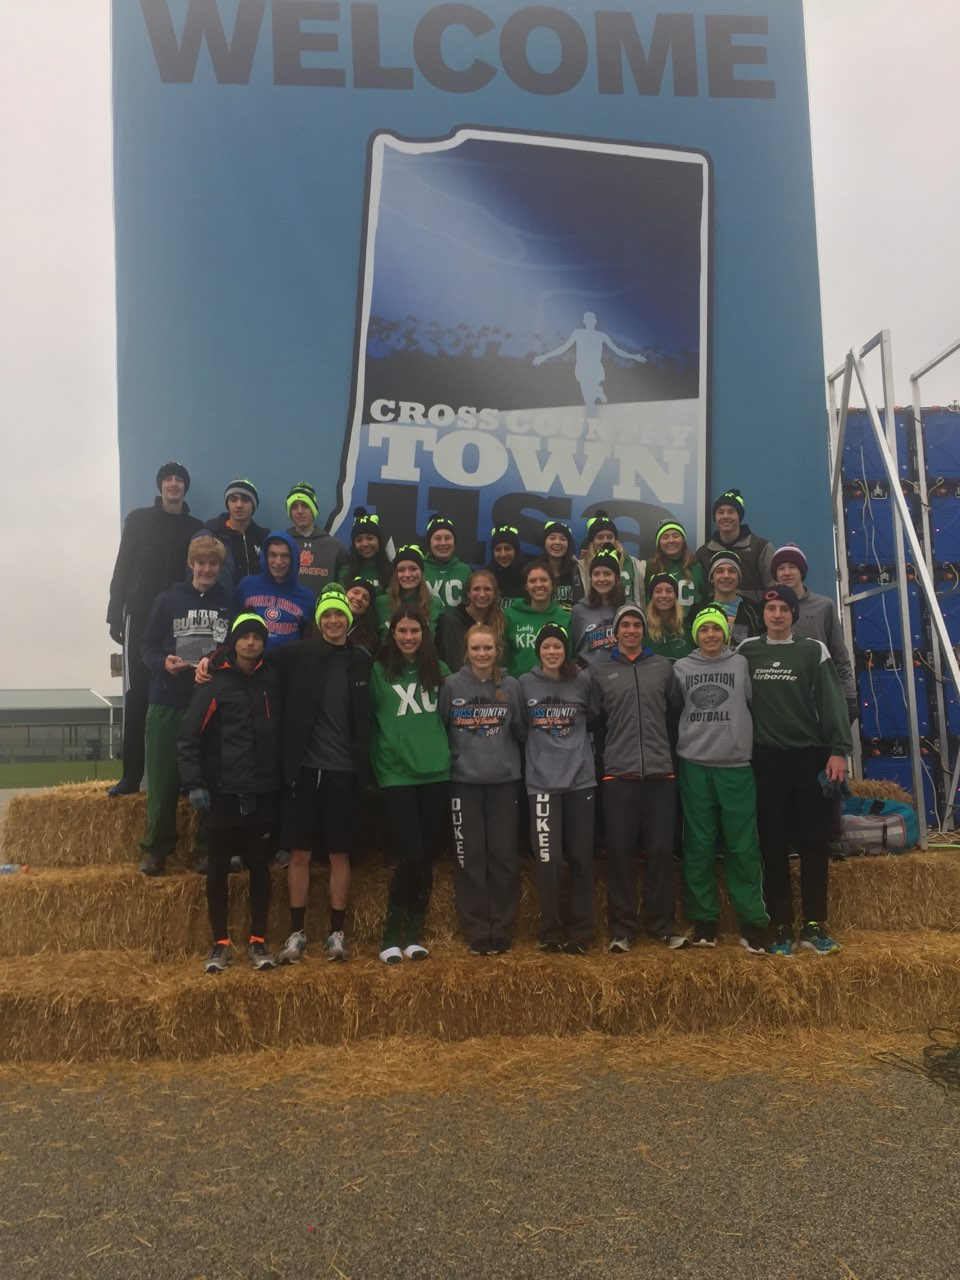 The boys KROY team and the girl's KROY team pose together at the course after their races finished. (Nov. 12,2017)